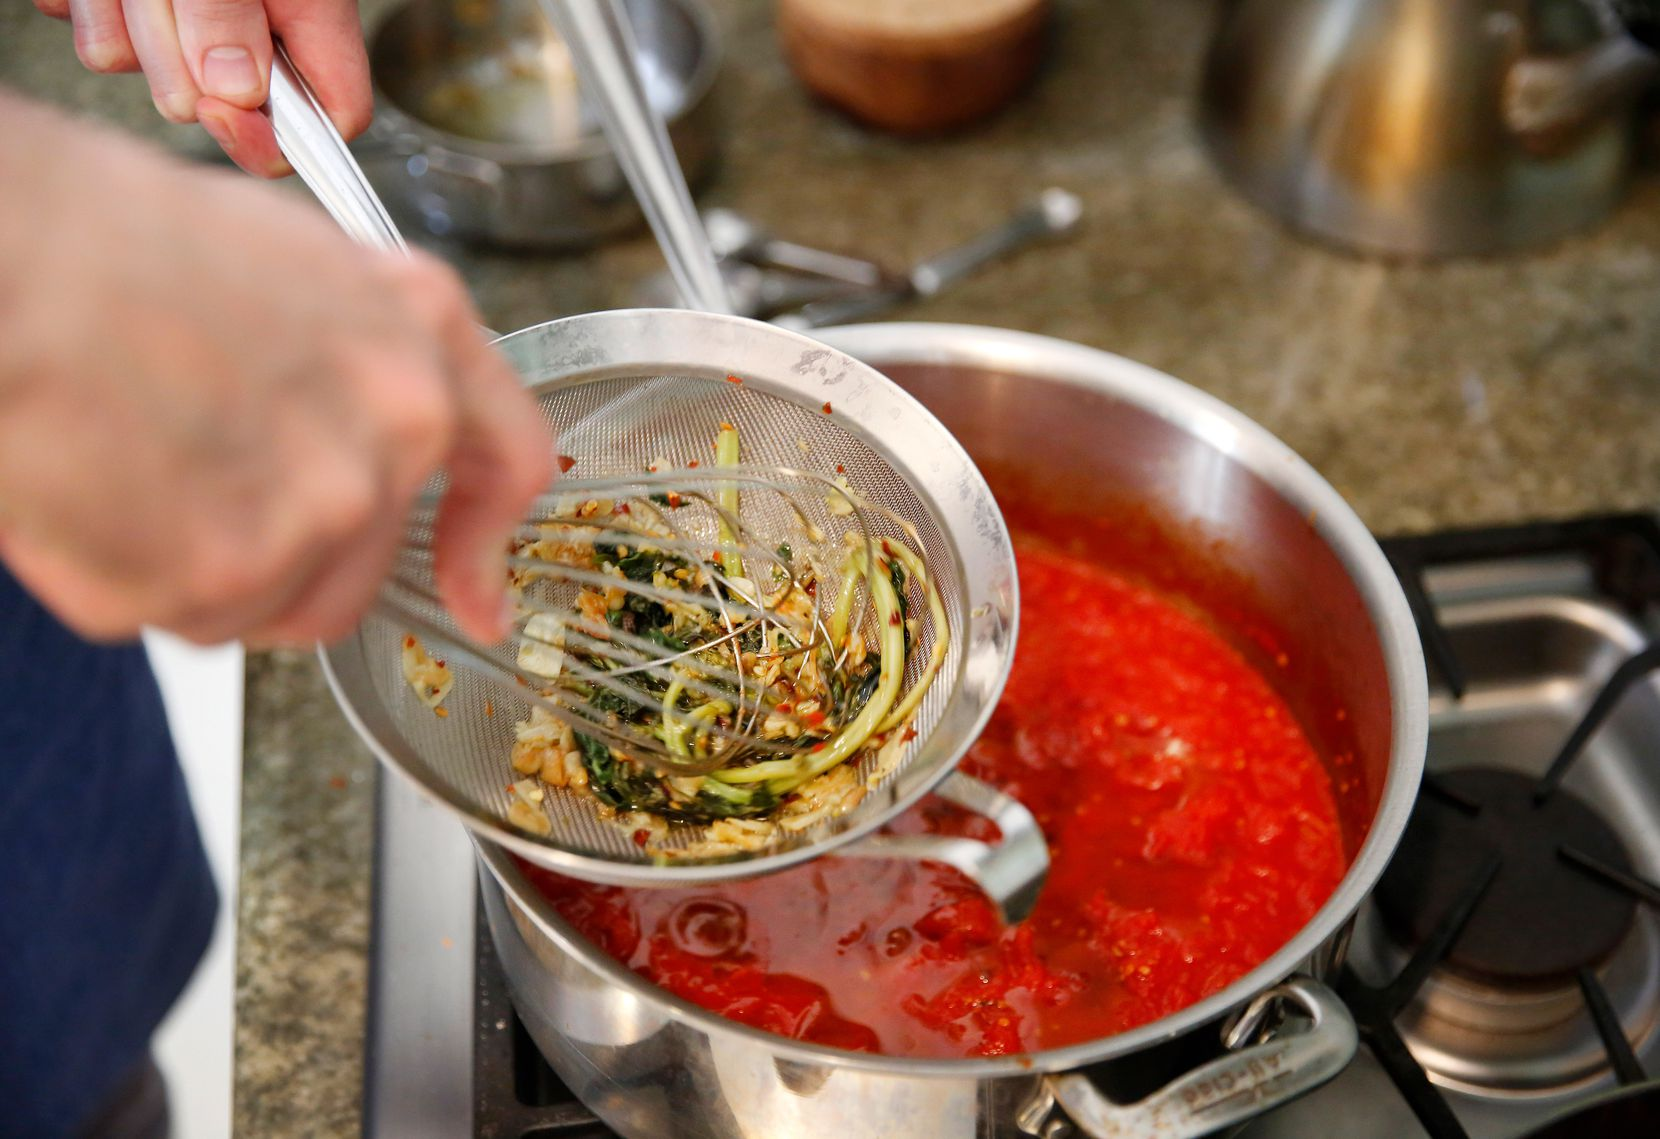 Barsotti adds olive oil infused with basil and garlic to the tomato sauce.